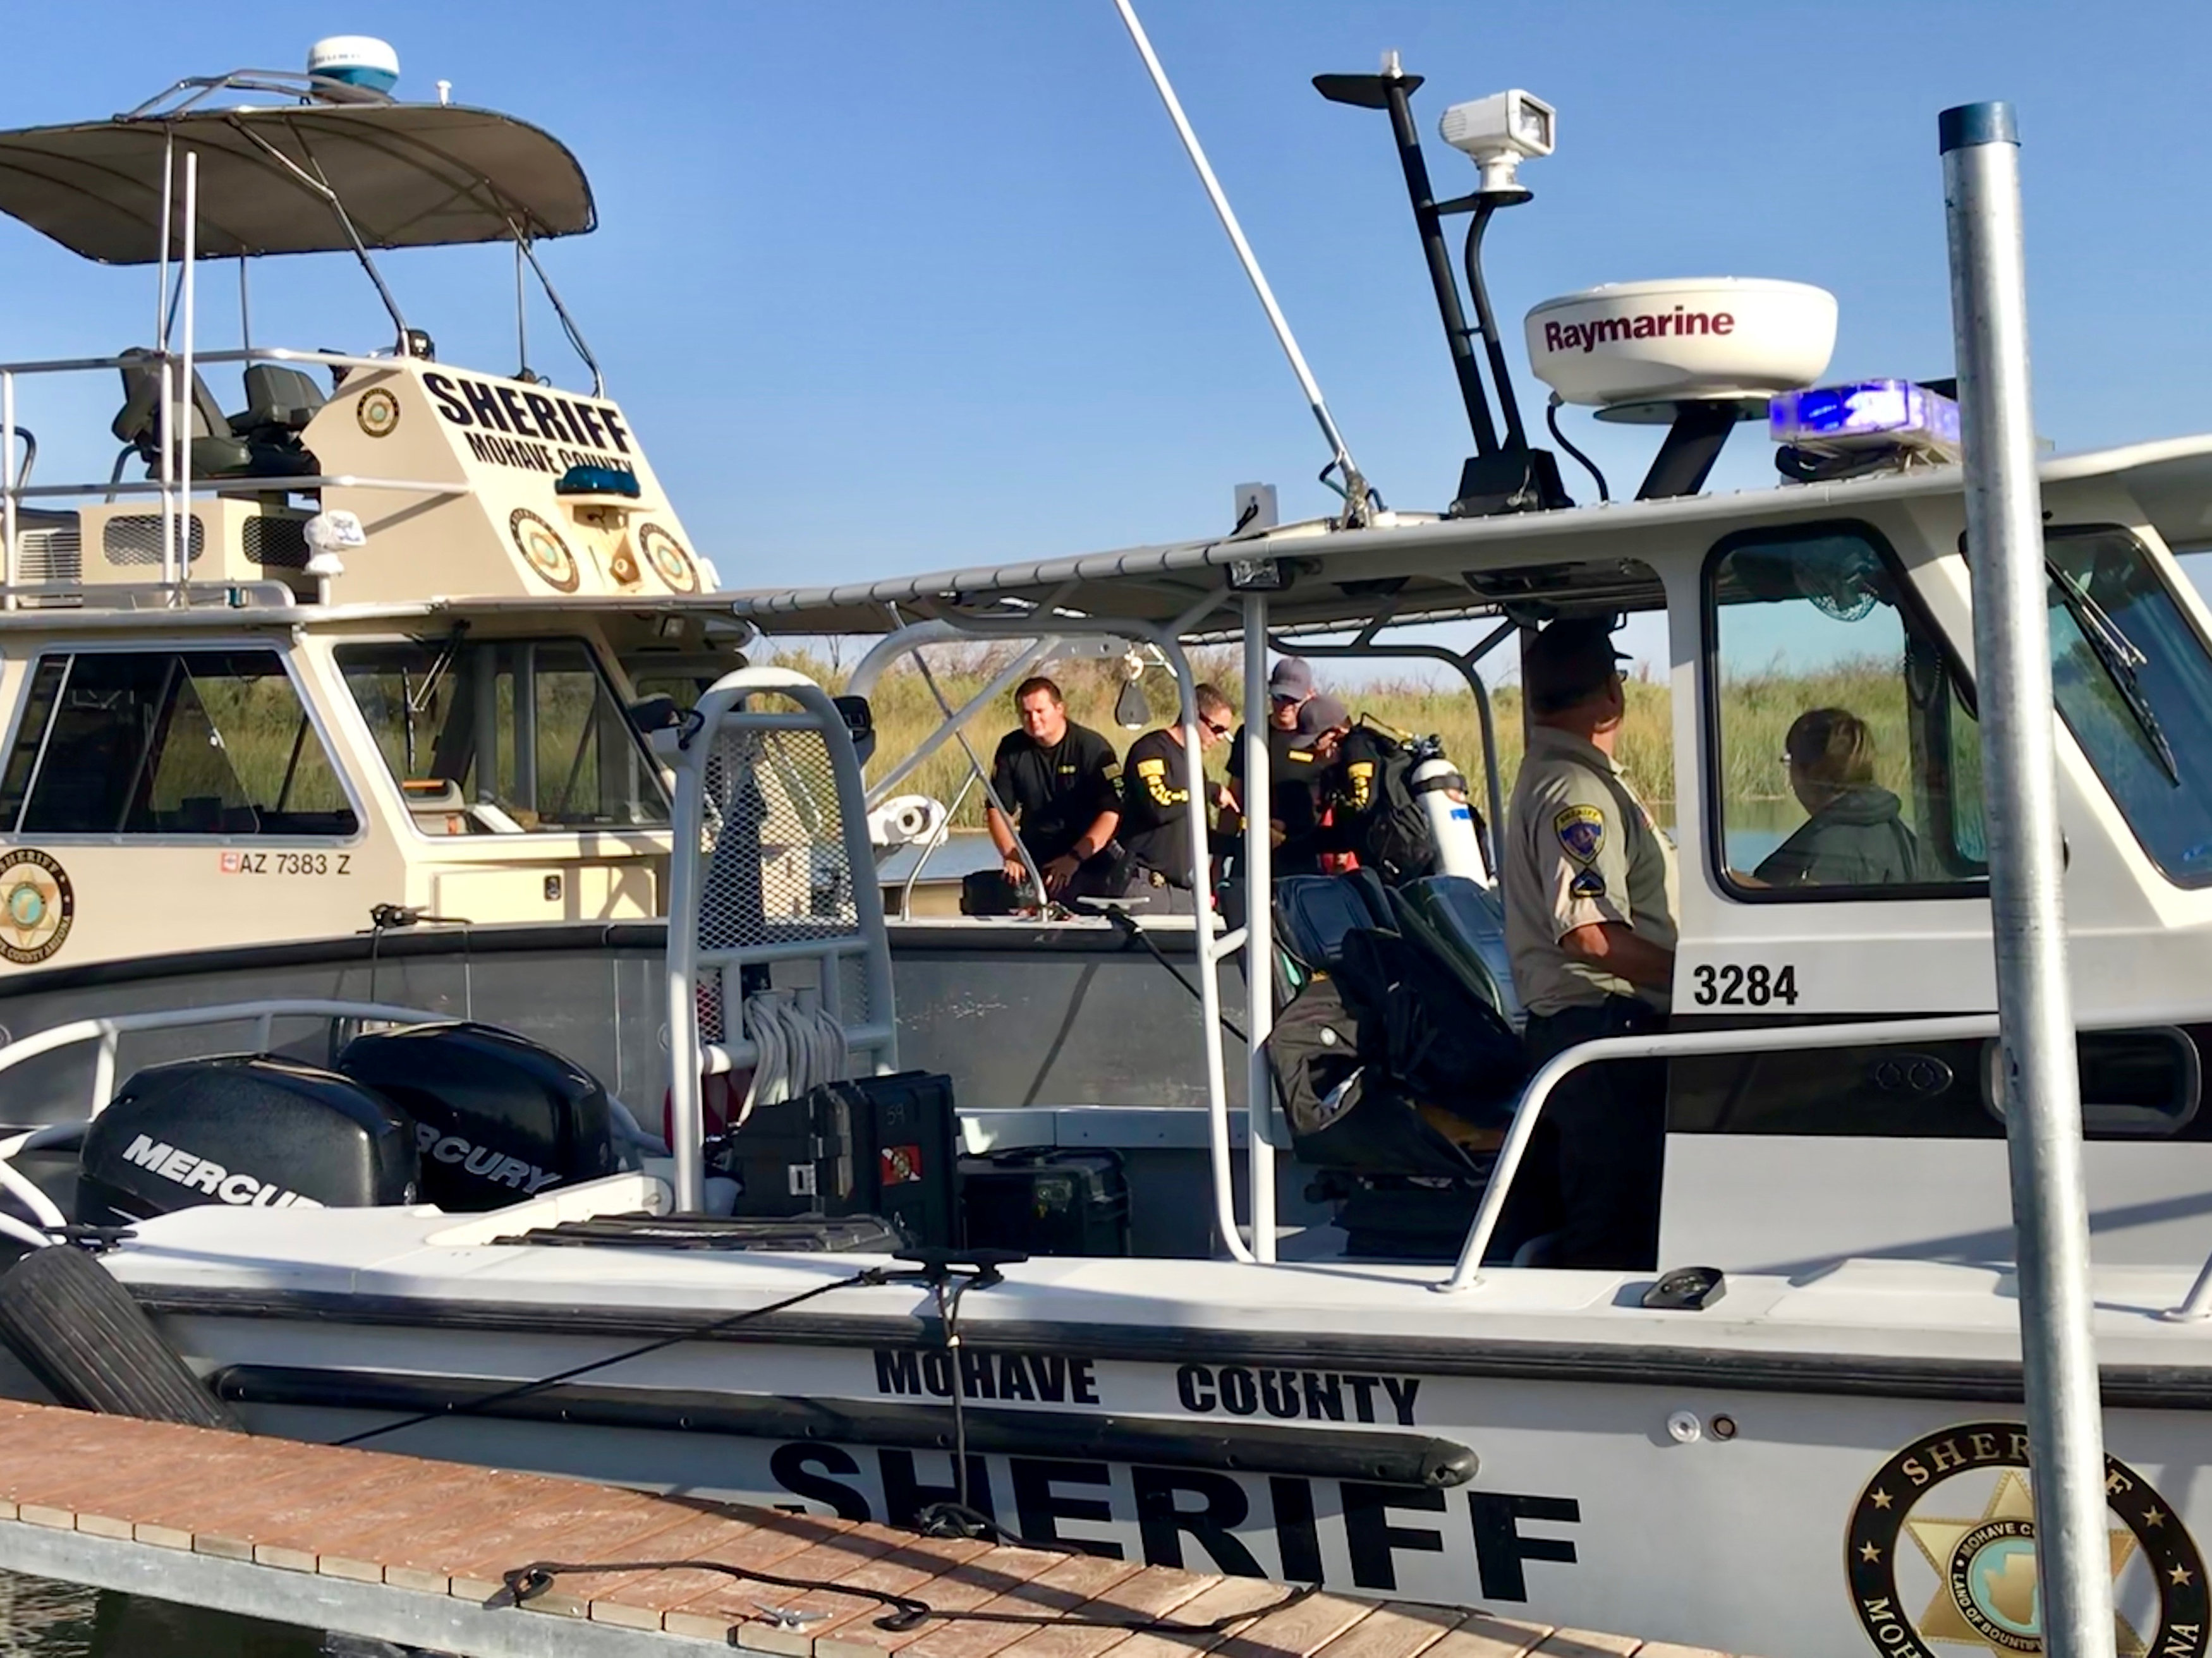 Mohave County Sheriff's Office search and rescue boats look for four people missing on the Colorado River, north of Lake Havasu in Arizona, U.S. September 2, 2018. Mohave County Sheriff's Office/Handout via REUTERS